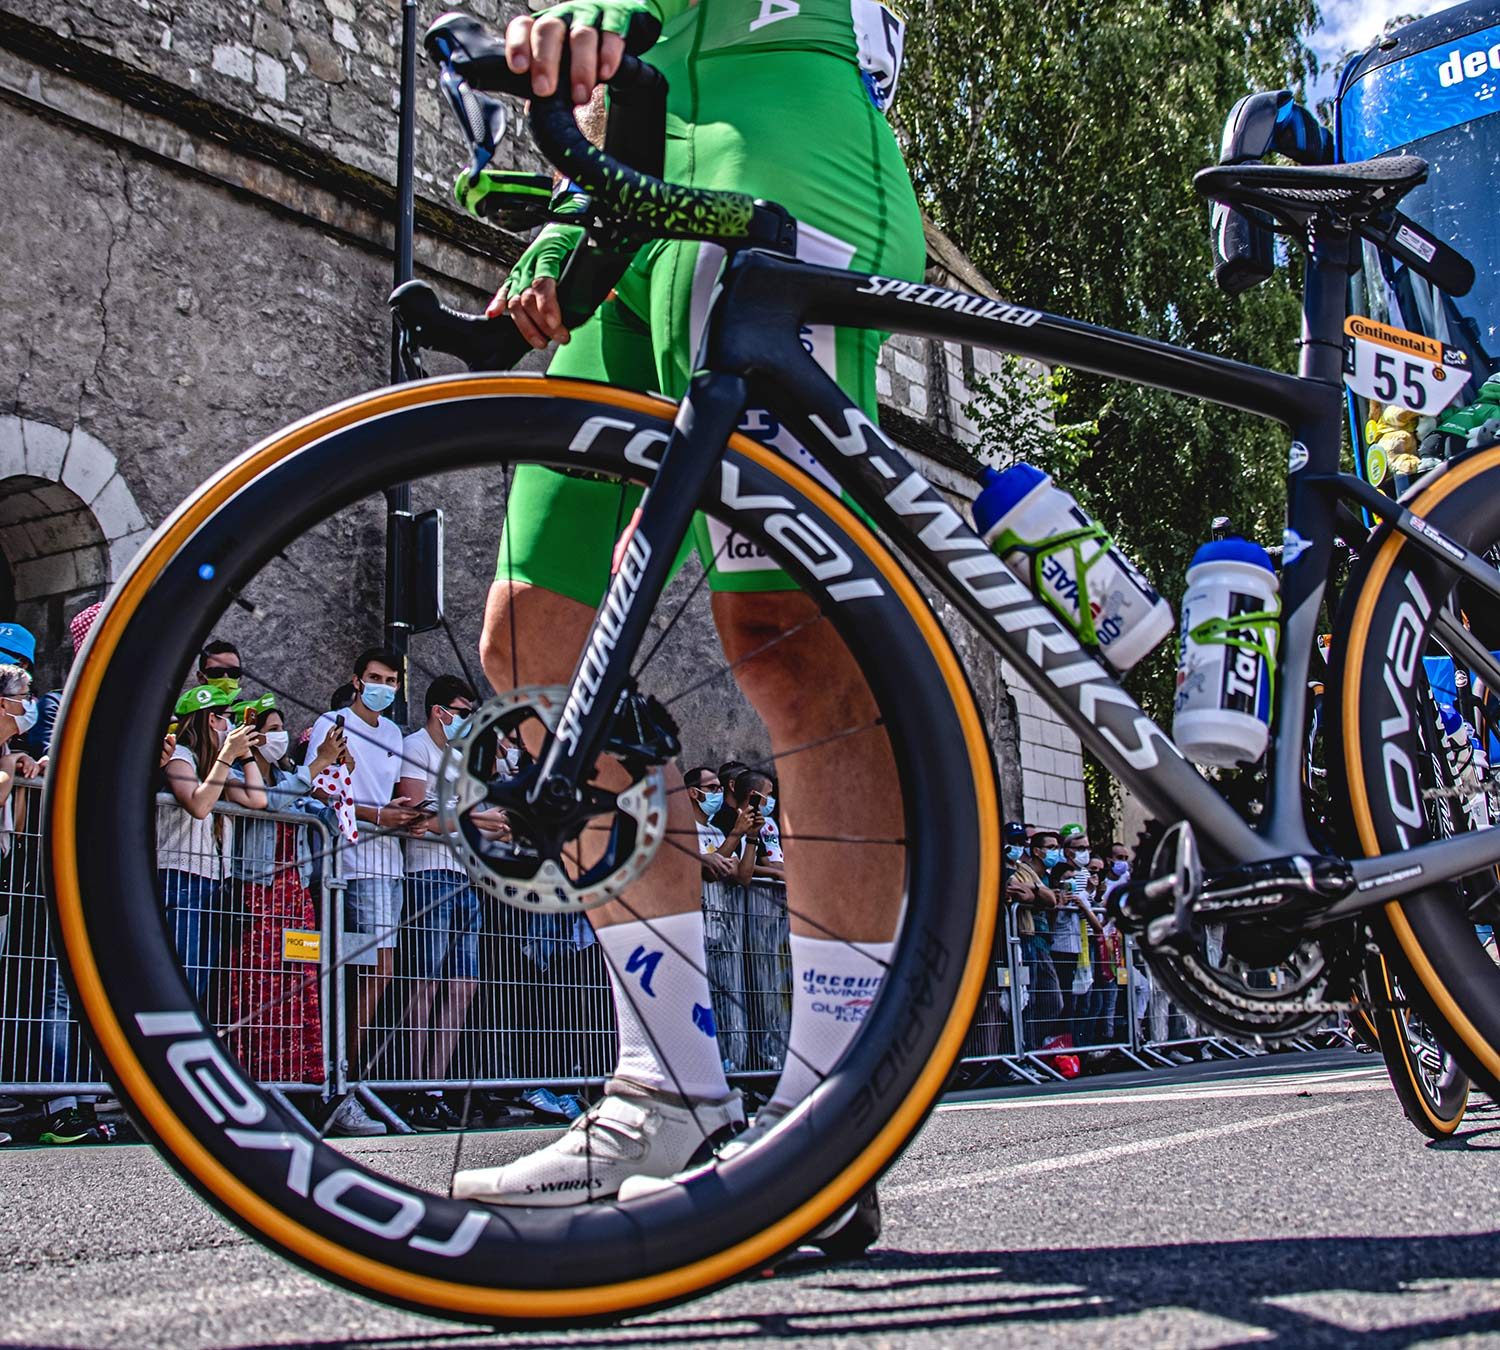 2021 Mark Cavendish 3x Tour de France stage winning green sprinter jersey Specialized S-Works Tarmac SL7, photo by Chris Auld, pre-race